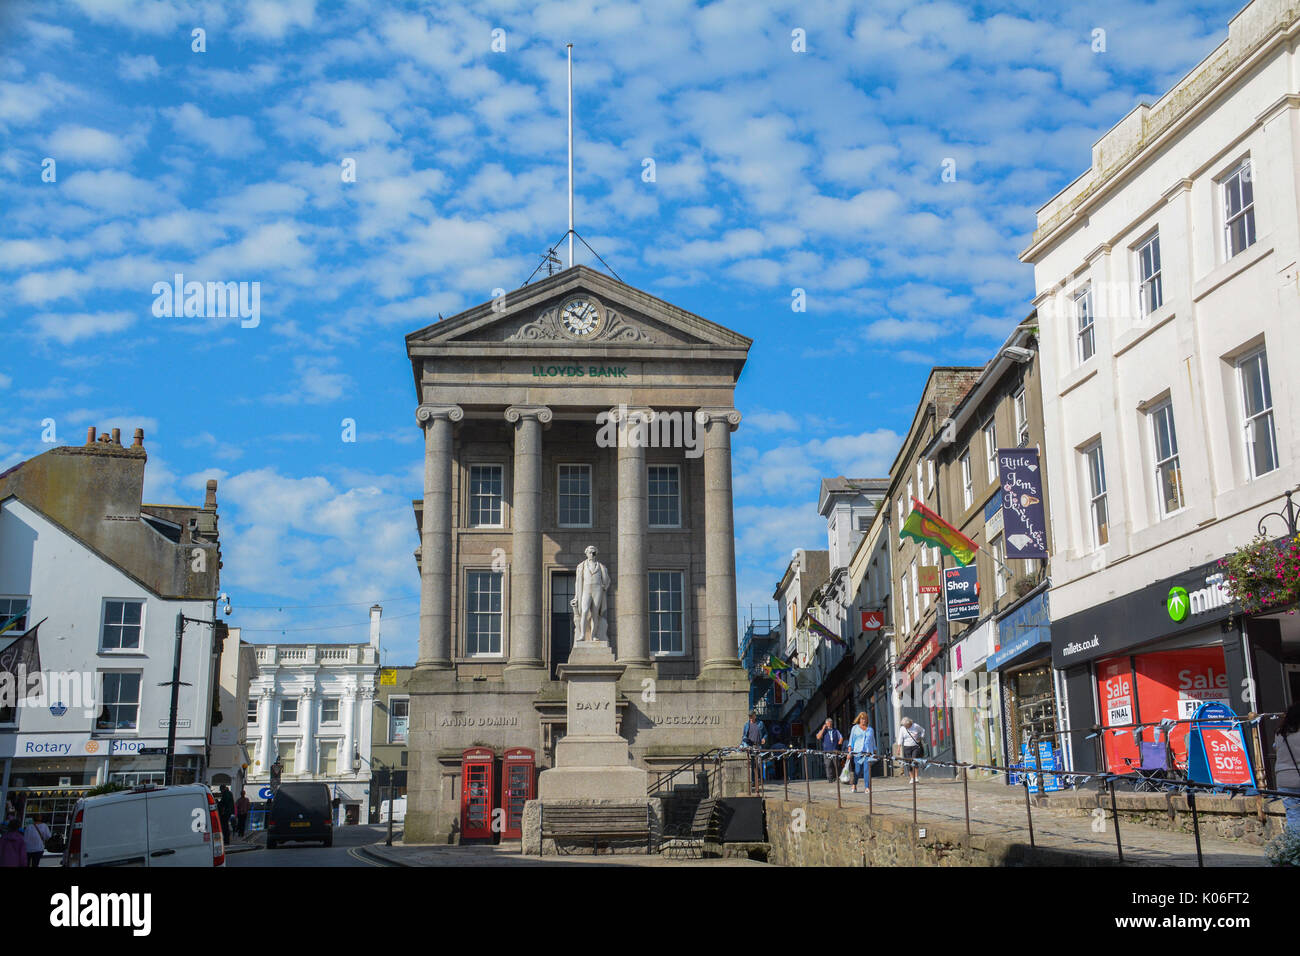 Penzance, Cornwall, UK. 22nd August 2017. The statue of Sir Humphry Davy in Penzance high street, has  been given a pirate eye patch, ahead of the world record attempt this Sunday in Penzance. On 27th August there will be a Guinness World Records Attempt to regain Penzances title of hosting the largest gathering of Pirates.  15,000 Pirates are needed. Credit: Simon Maycock/Alamy Live News - Stock Image